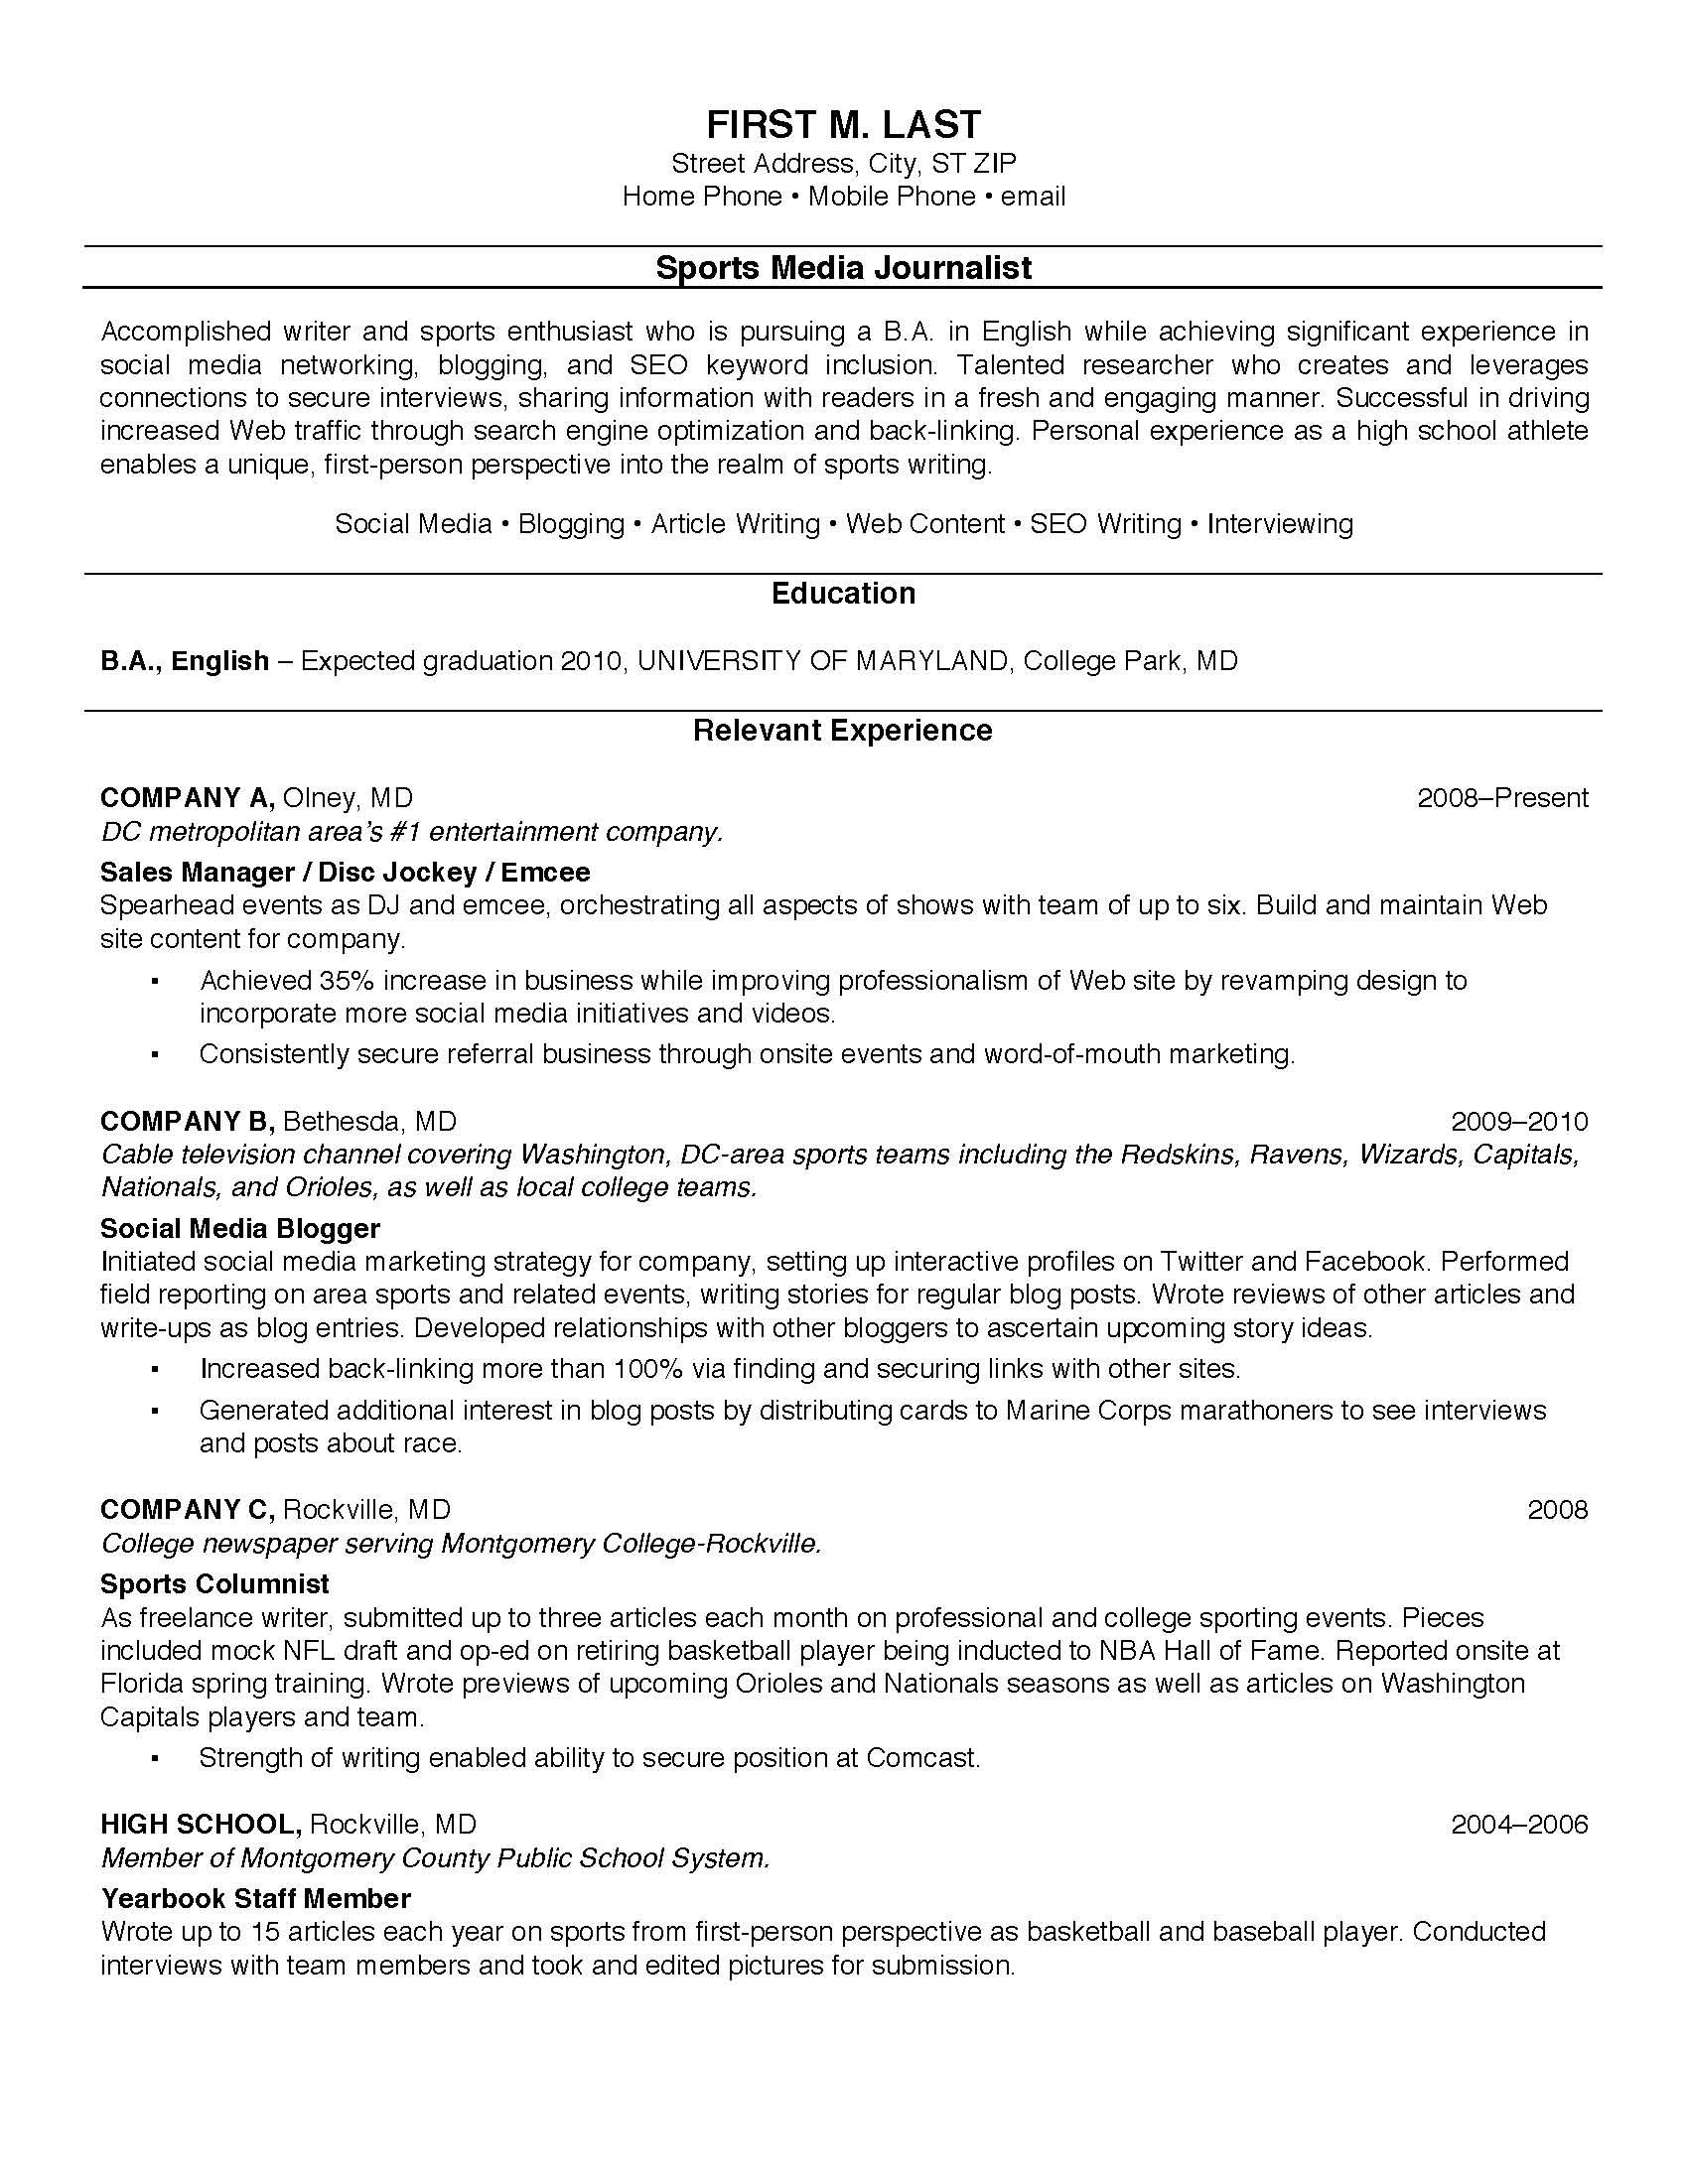 College Student Resume Example Sample http//www